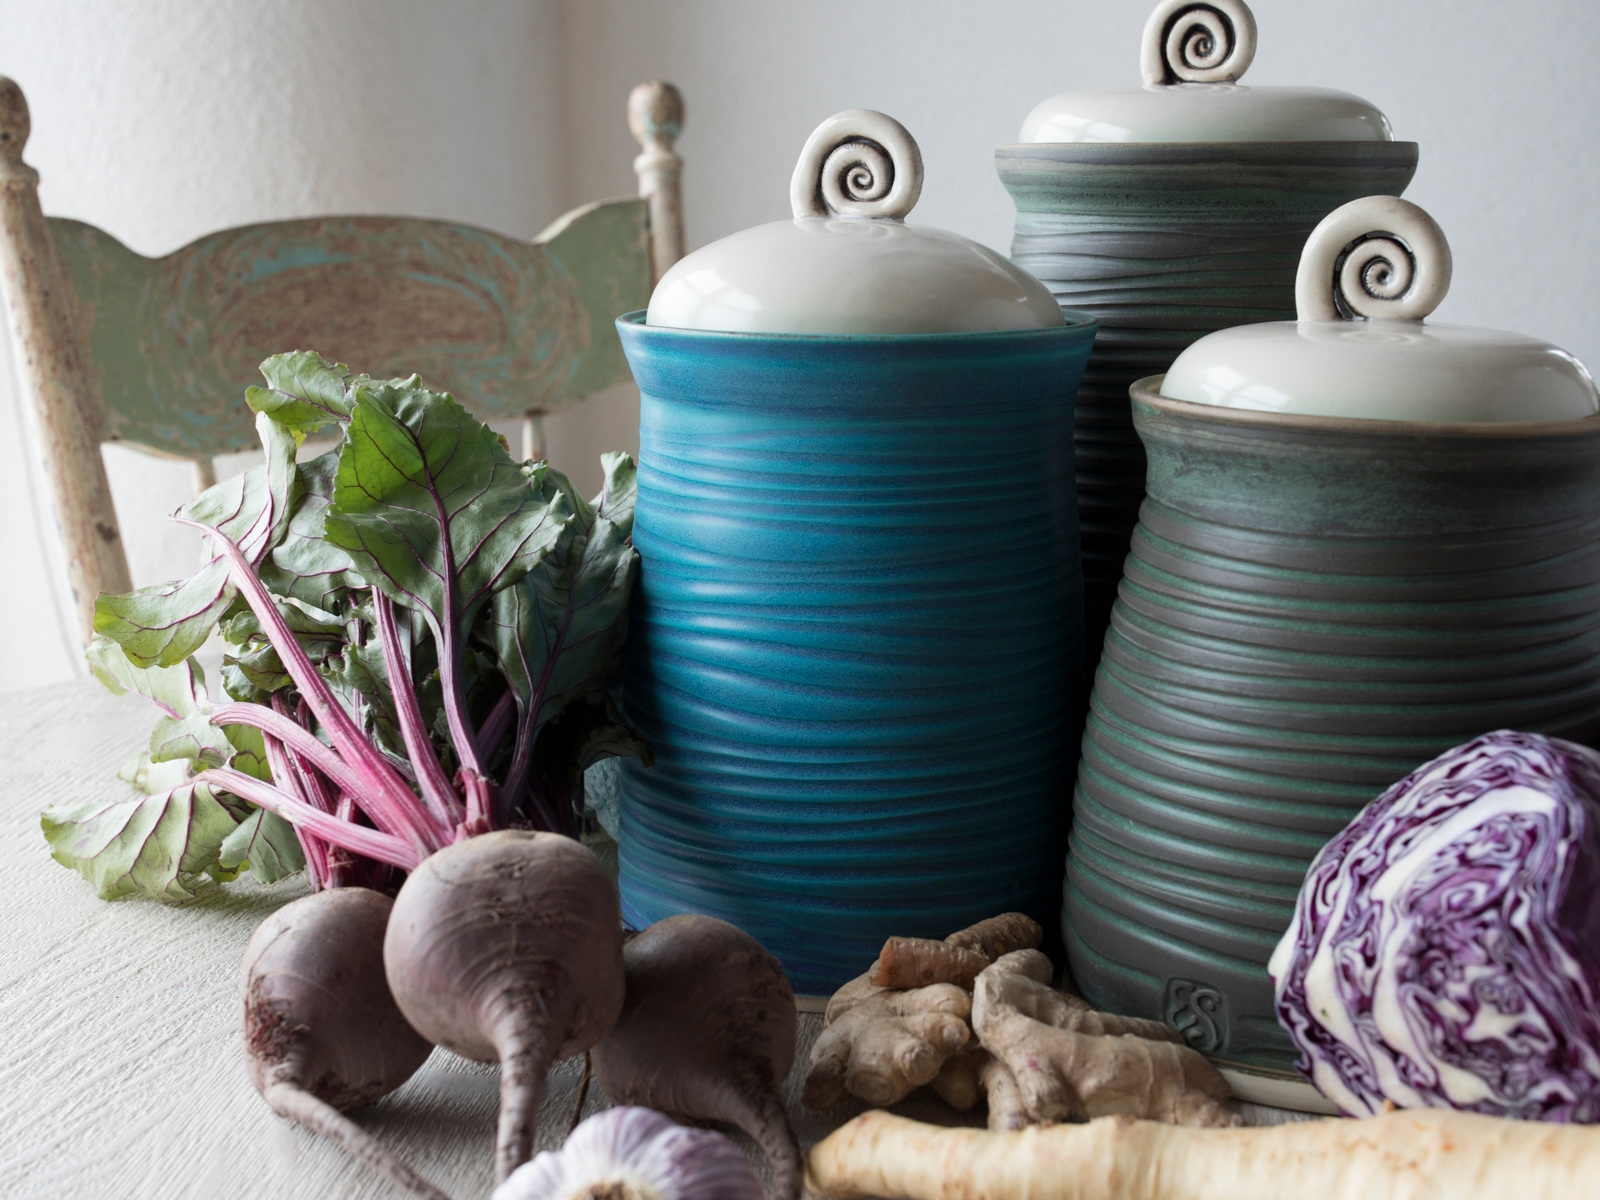 EVERYDAY CLAY - I create items for the kitchen that I personally use. Some items are recreated old-timey pieces that you can't find in fancy kitchen stores. Some are work horses like the fermenting crocks, storage jars and ovenware.